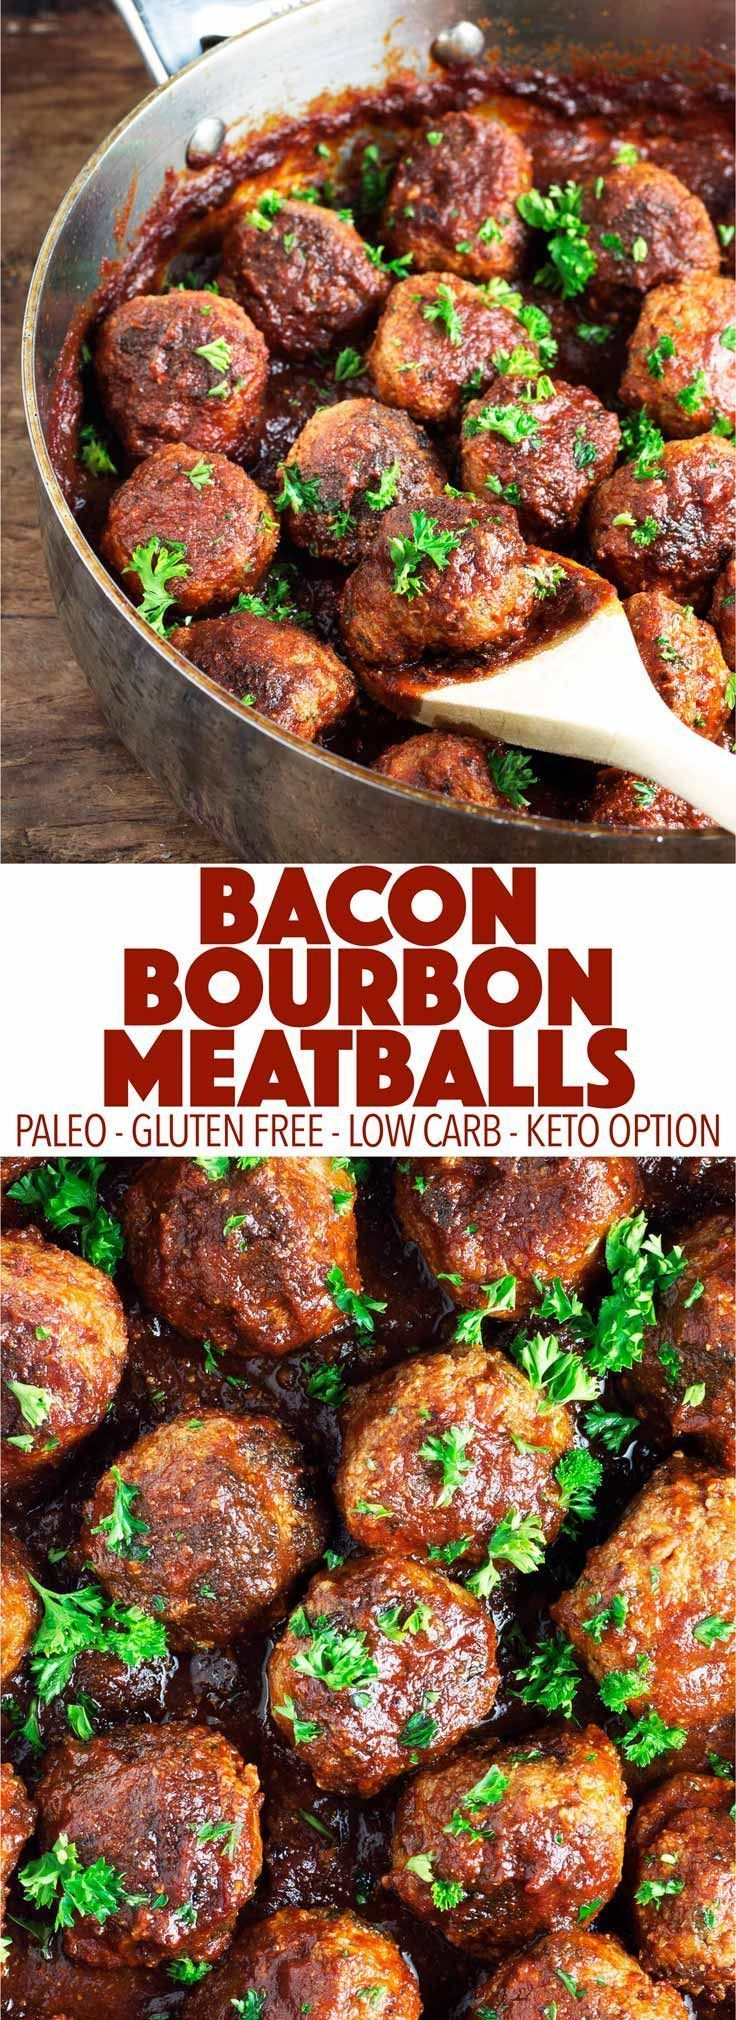 Perfect as a game day appetizer or for dinner! These bacon bourbon meatballs are…